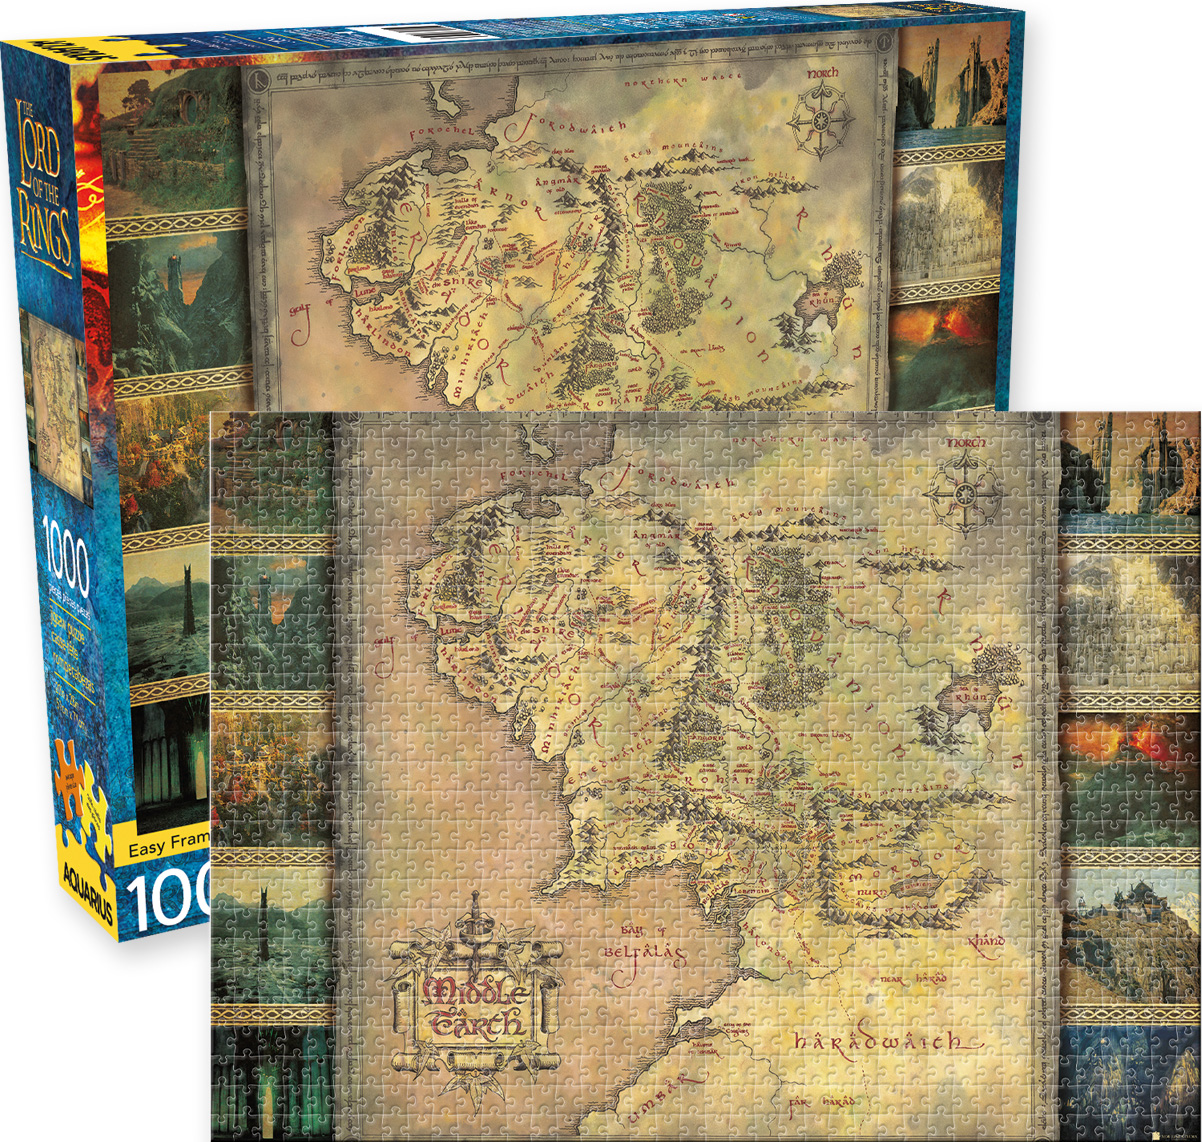 Lord of the Rings Map Movies / Books / TV Jigsaw Puzzle